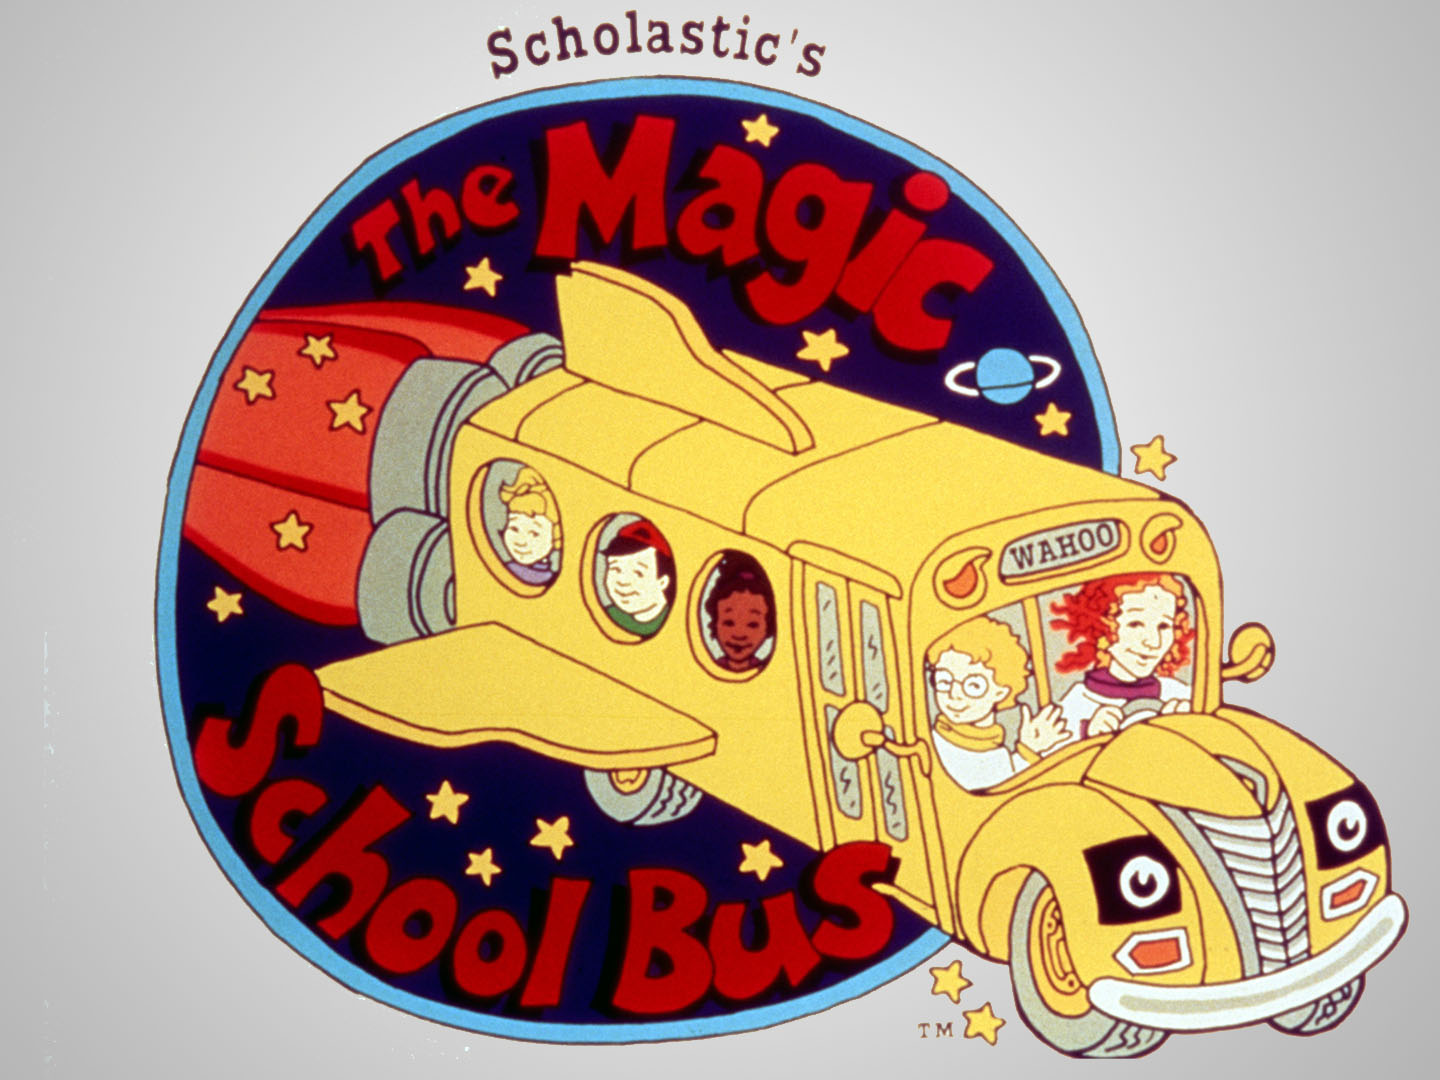 THE MAGIC SCHOOL BUS: A Science Chapter Book #1-20 GREAT CONDITION!